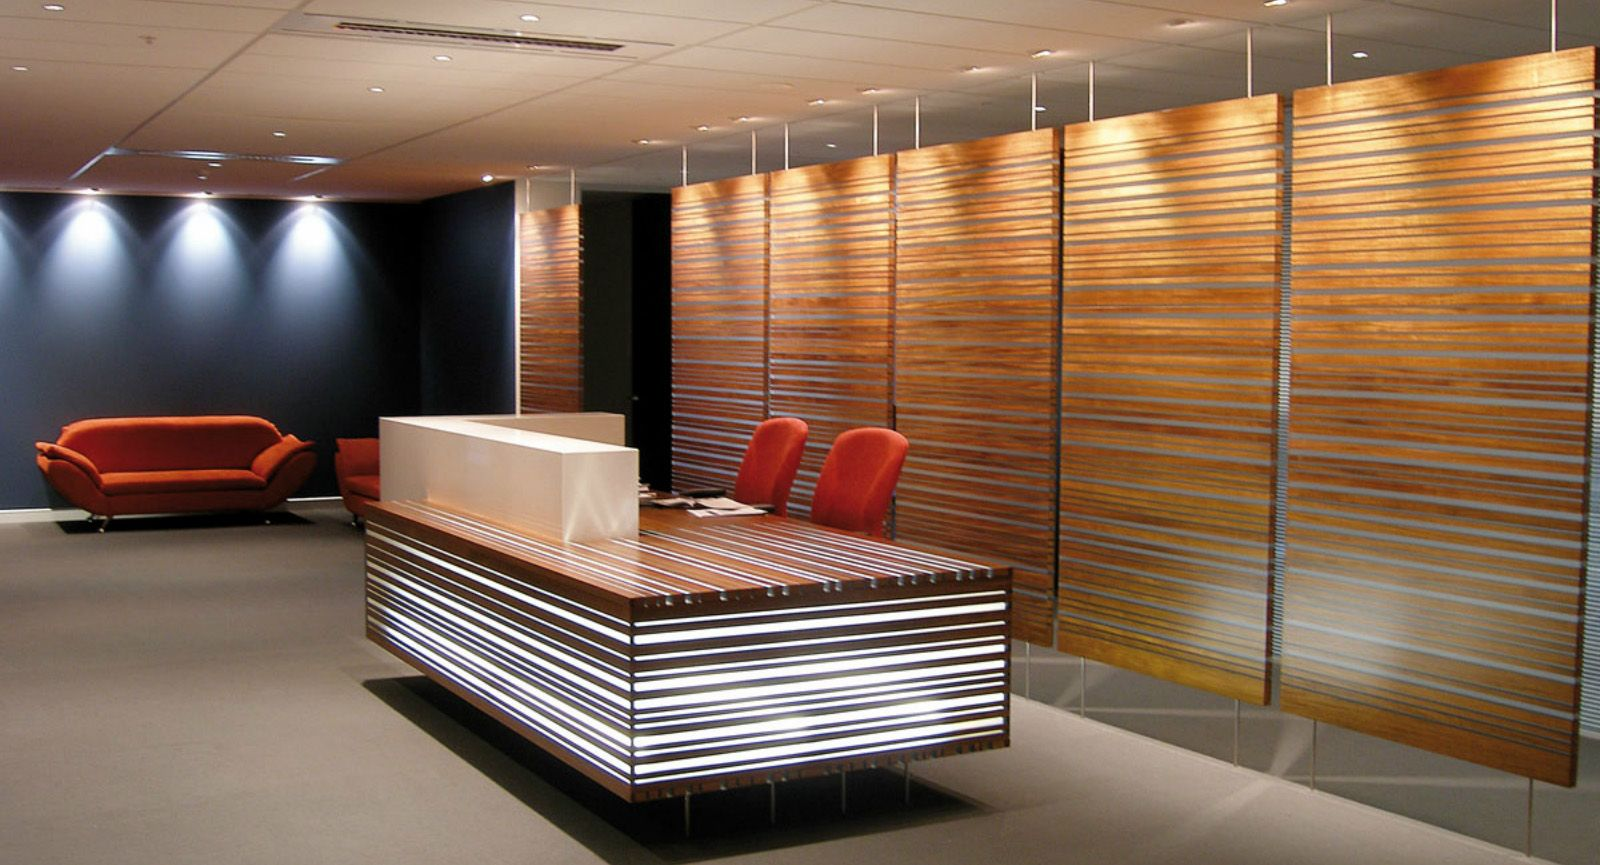 Perfect Contemporary Panelling Interior Wood Wall Paneling Designs Probably Good  Design Alternative For Your Design Suggestion,